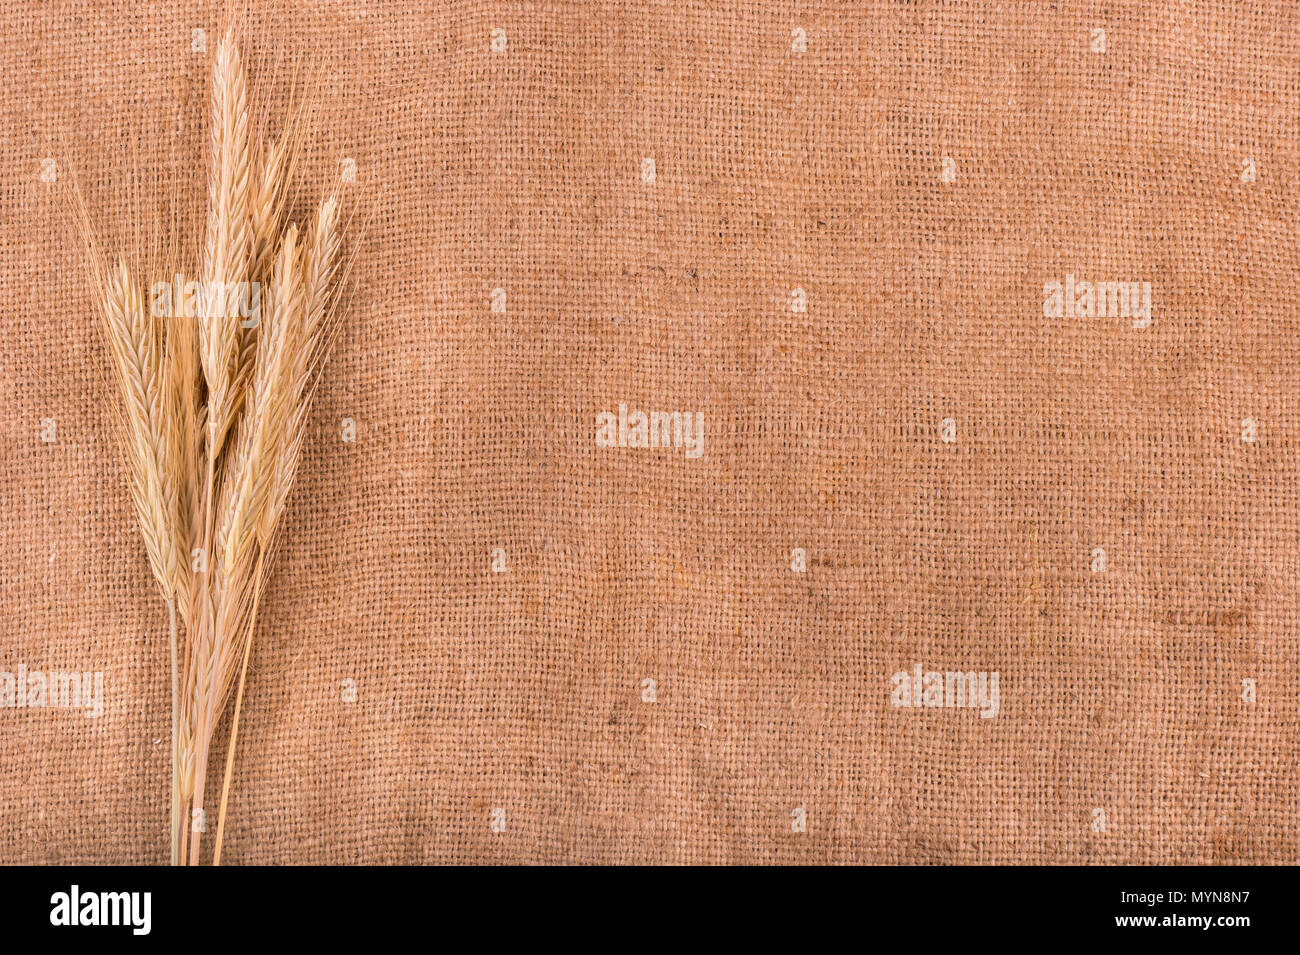 Several ears of corn harvested wheat on sacking - Stock Image